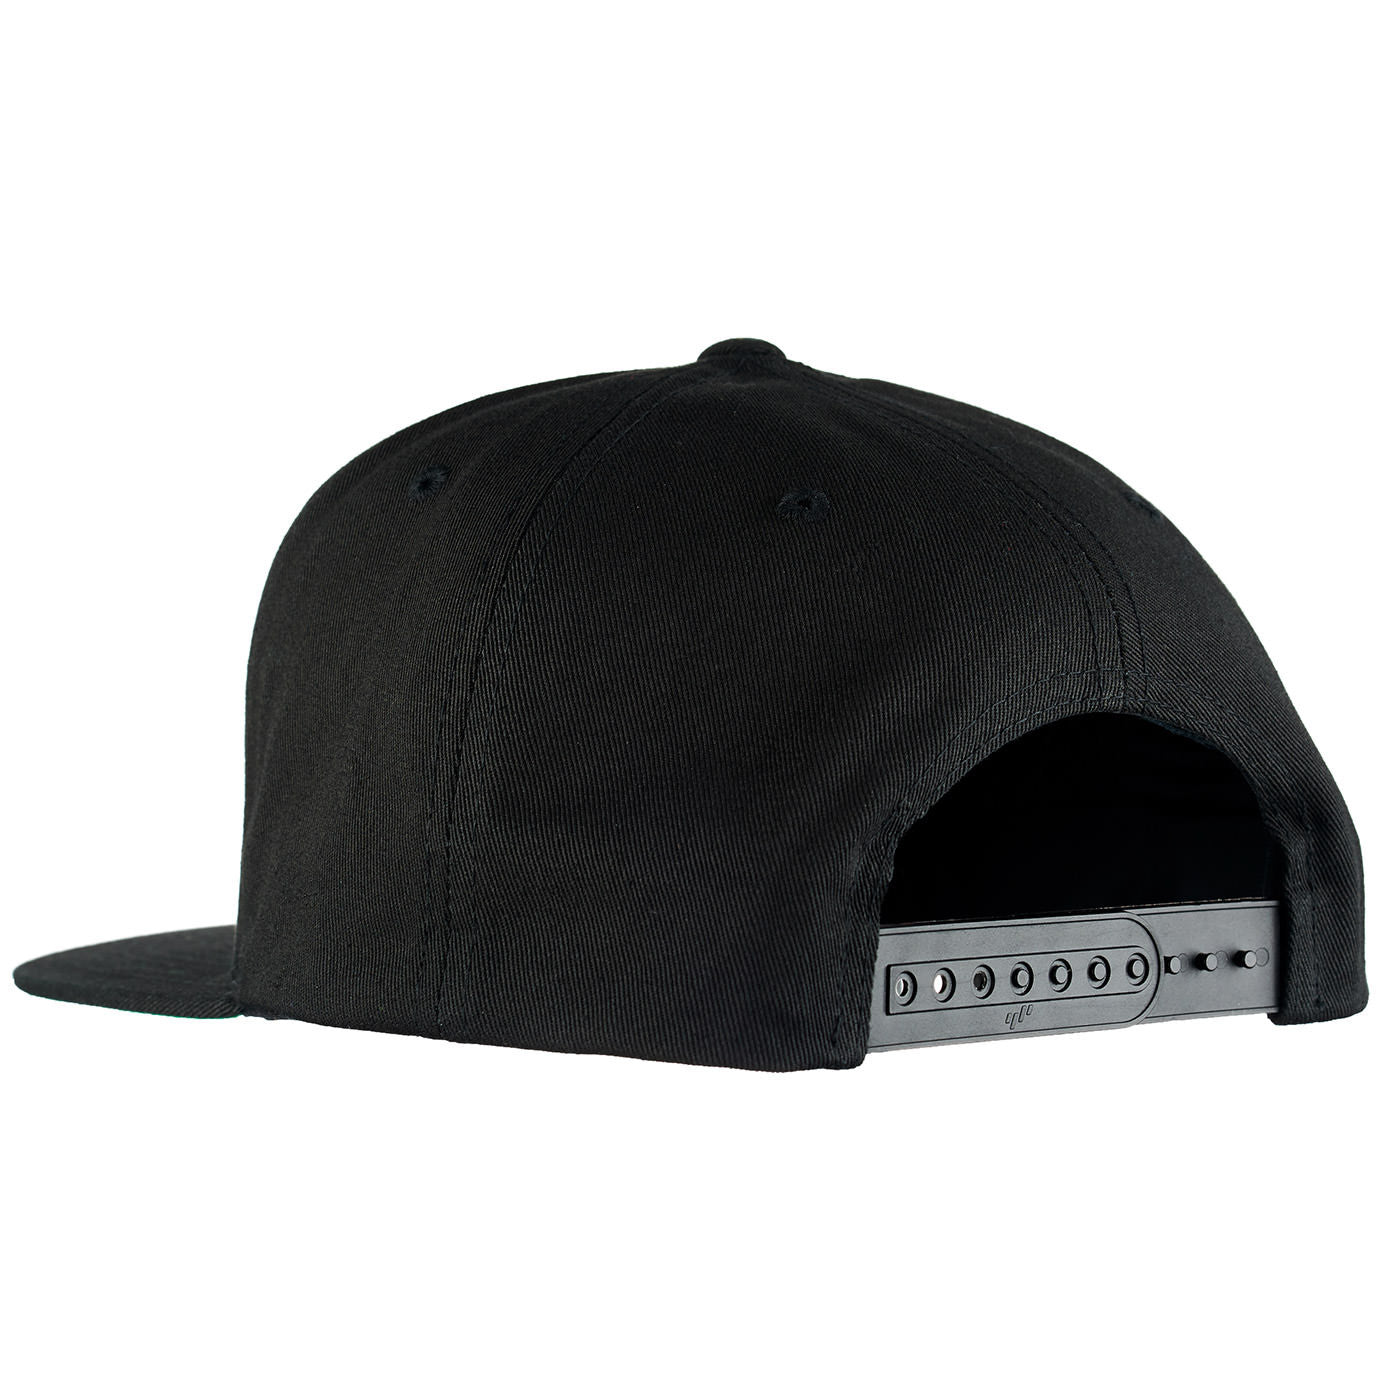 back view of black snapback